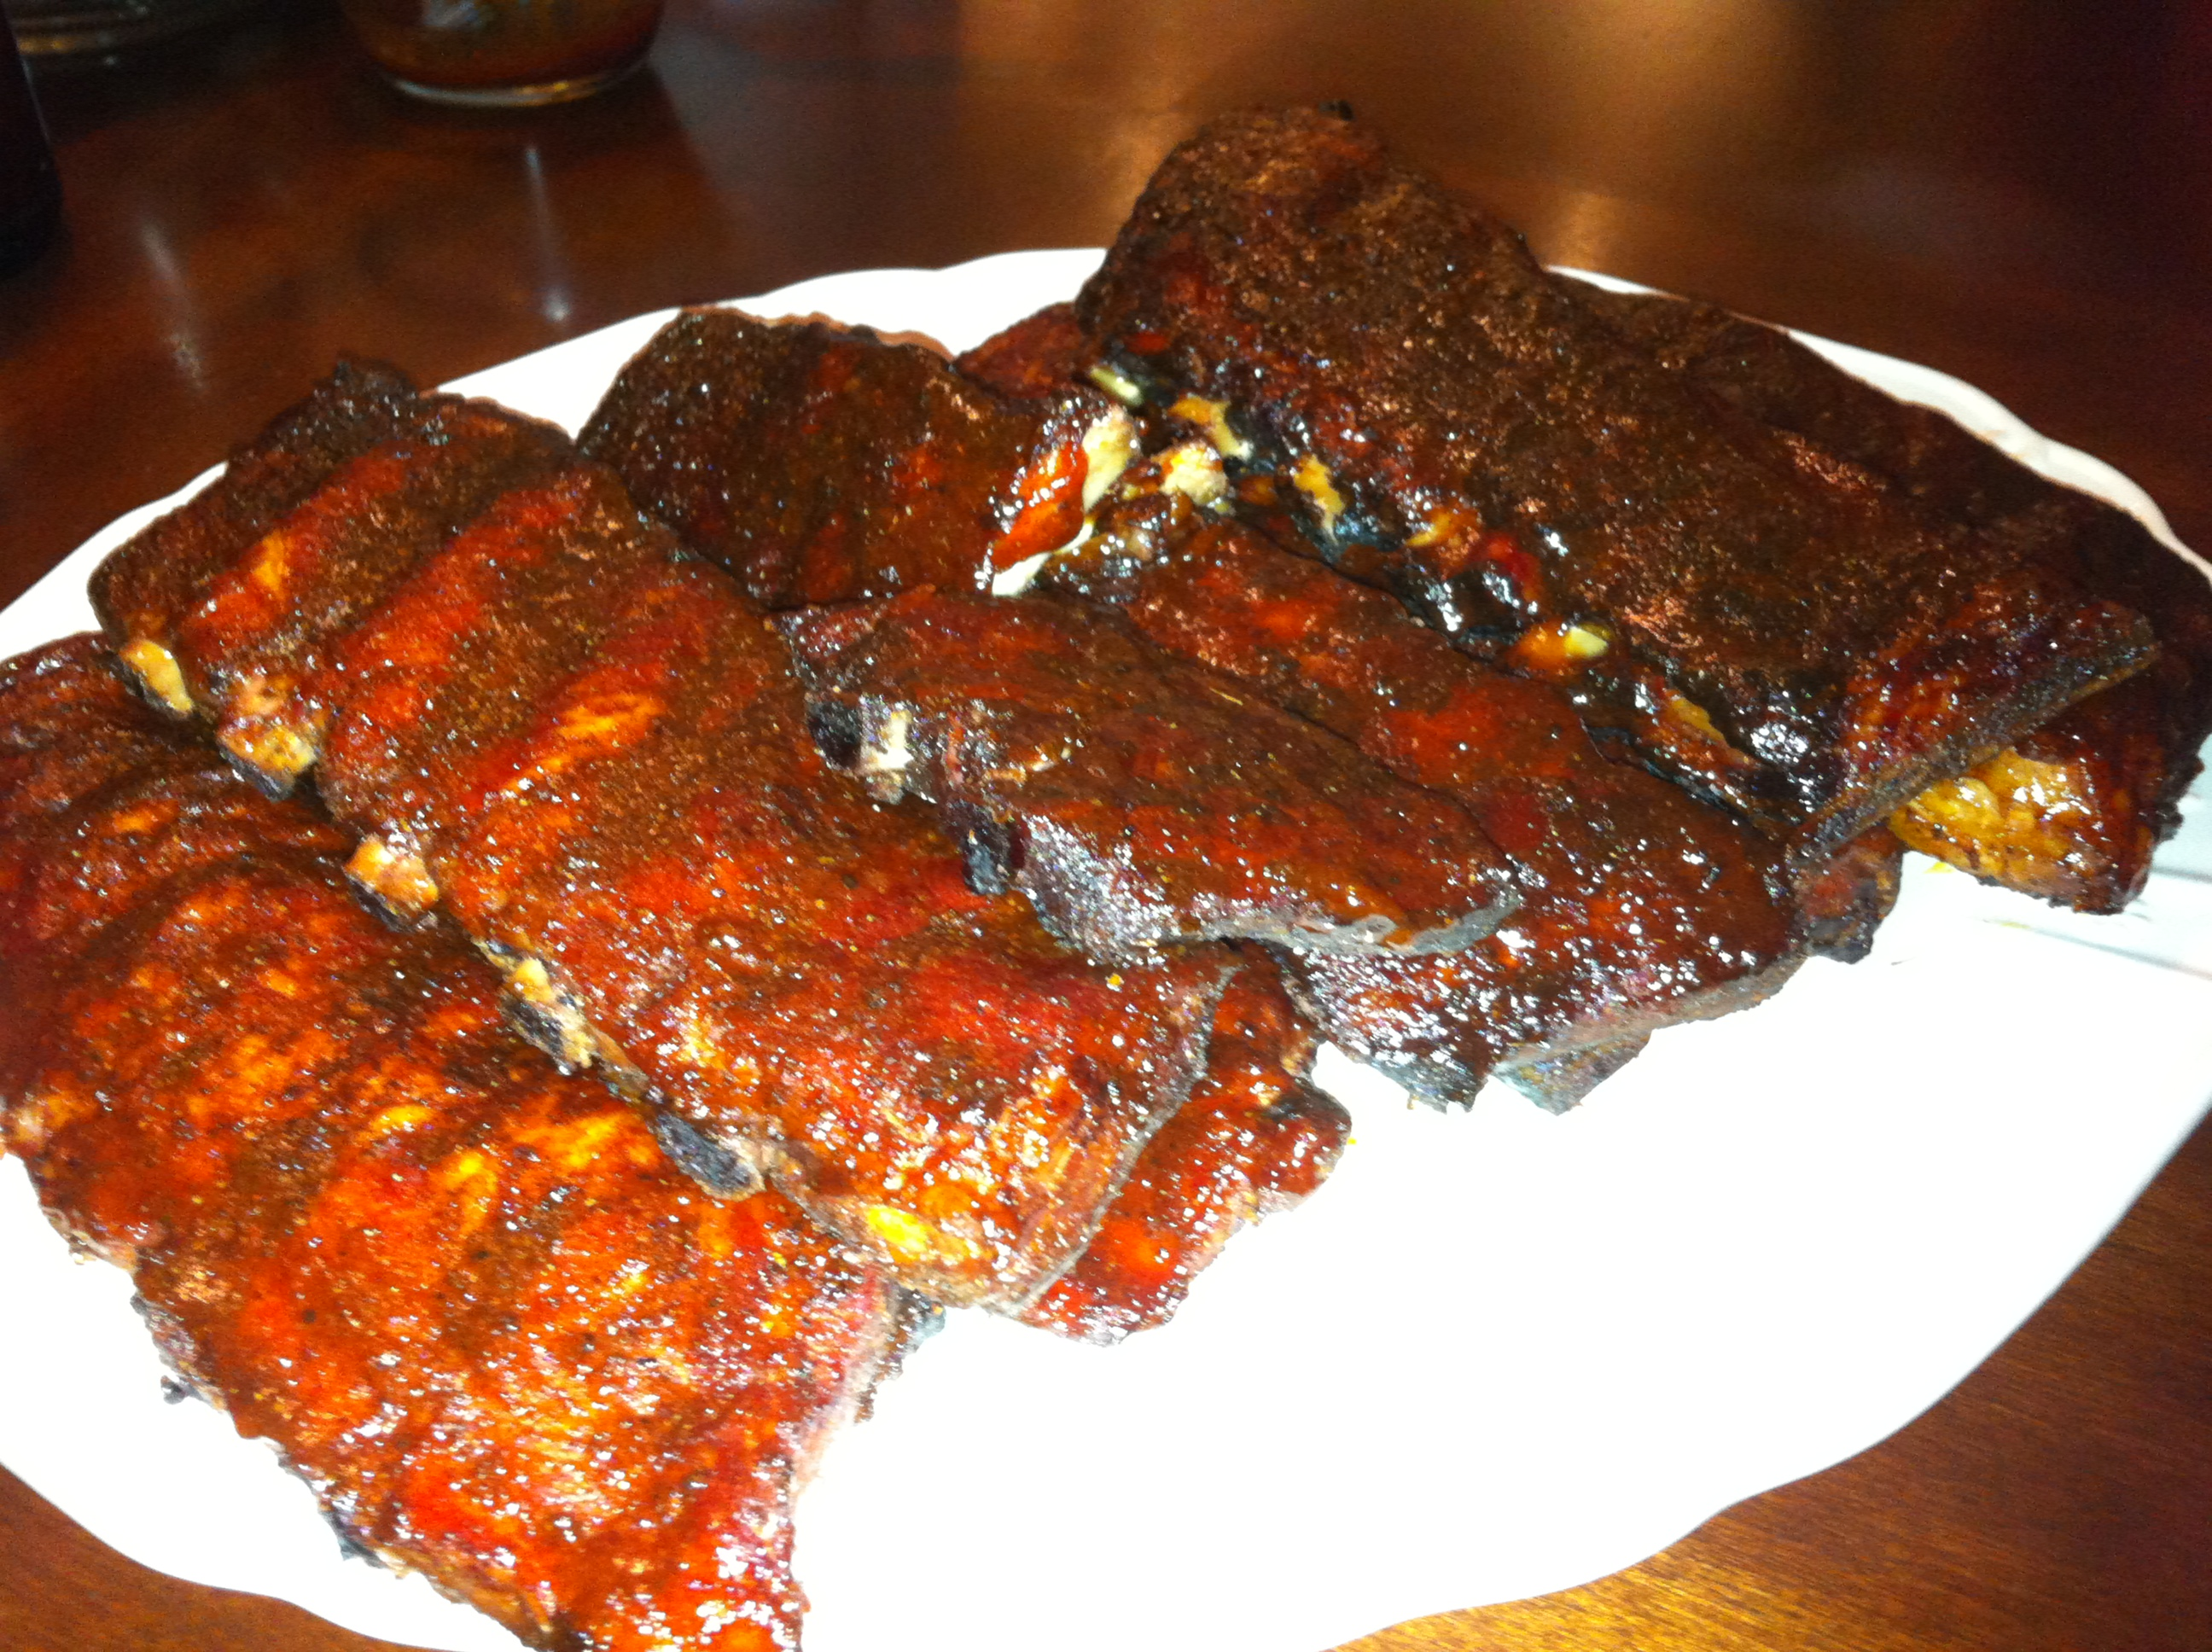 Big Green Egg Ribs ready to eat